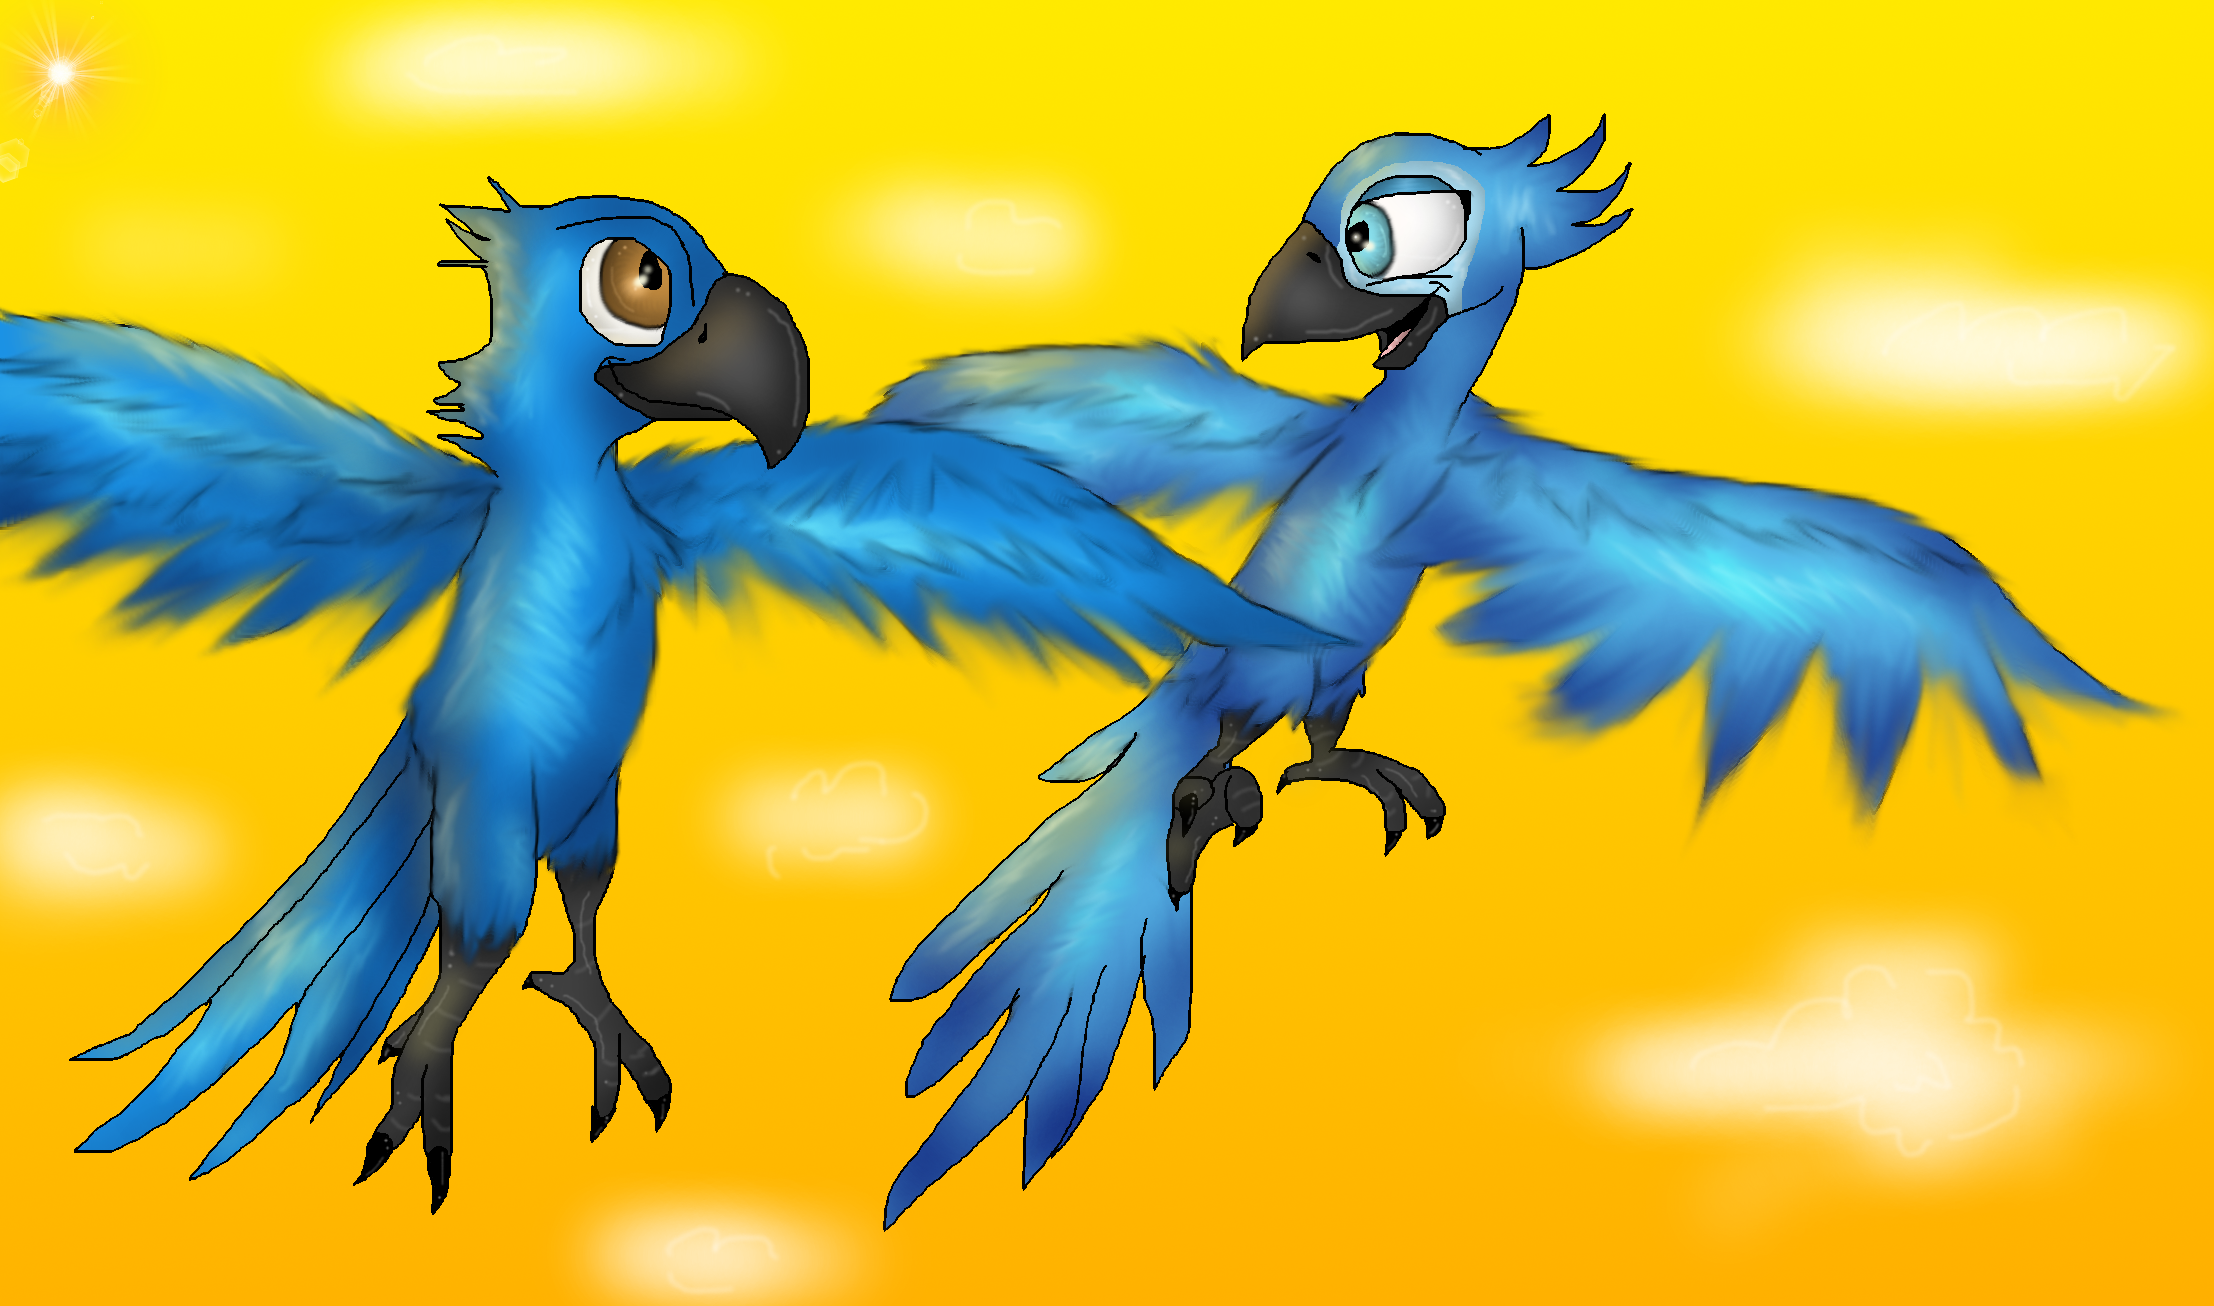 Rio Deviantart: Blu And Jewel By PlagueDogs123 On DeviantArt